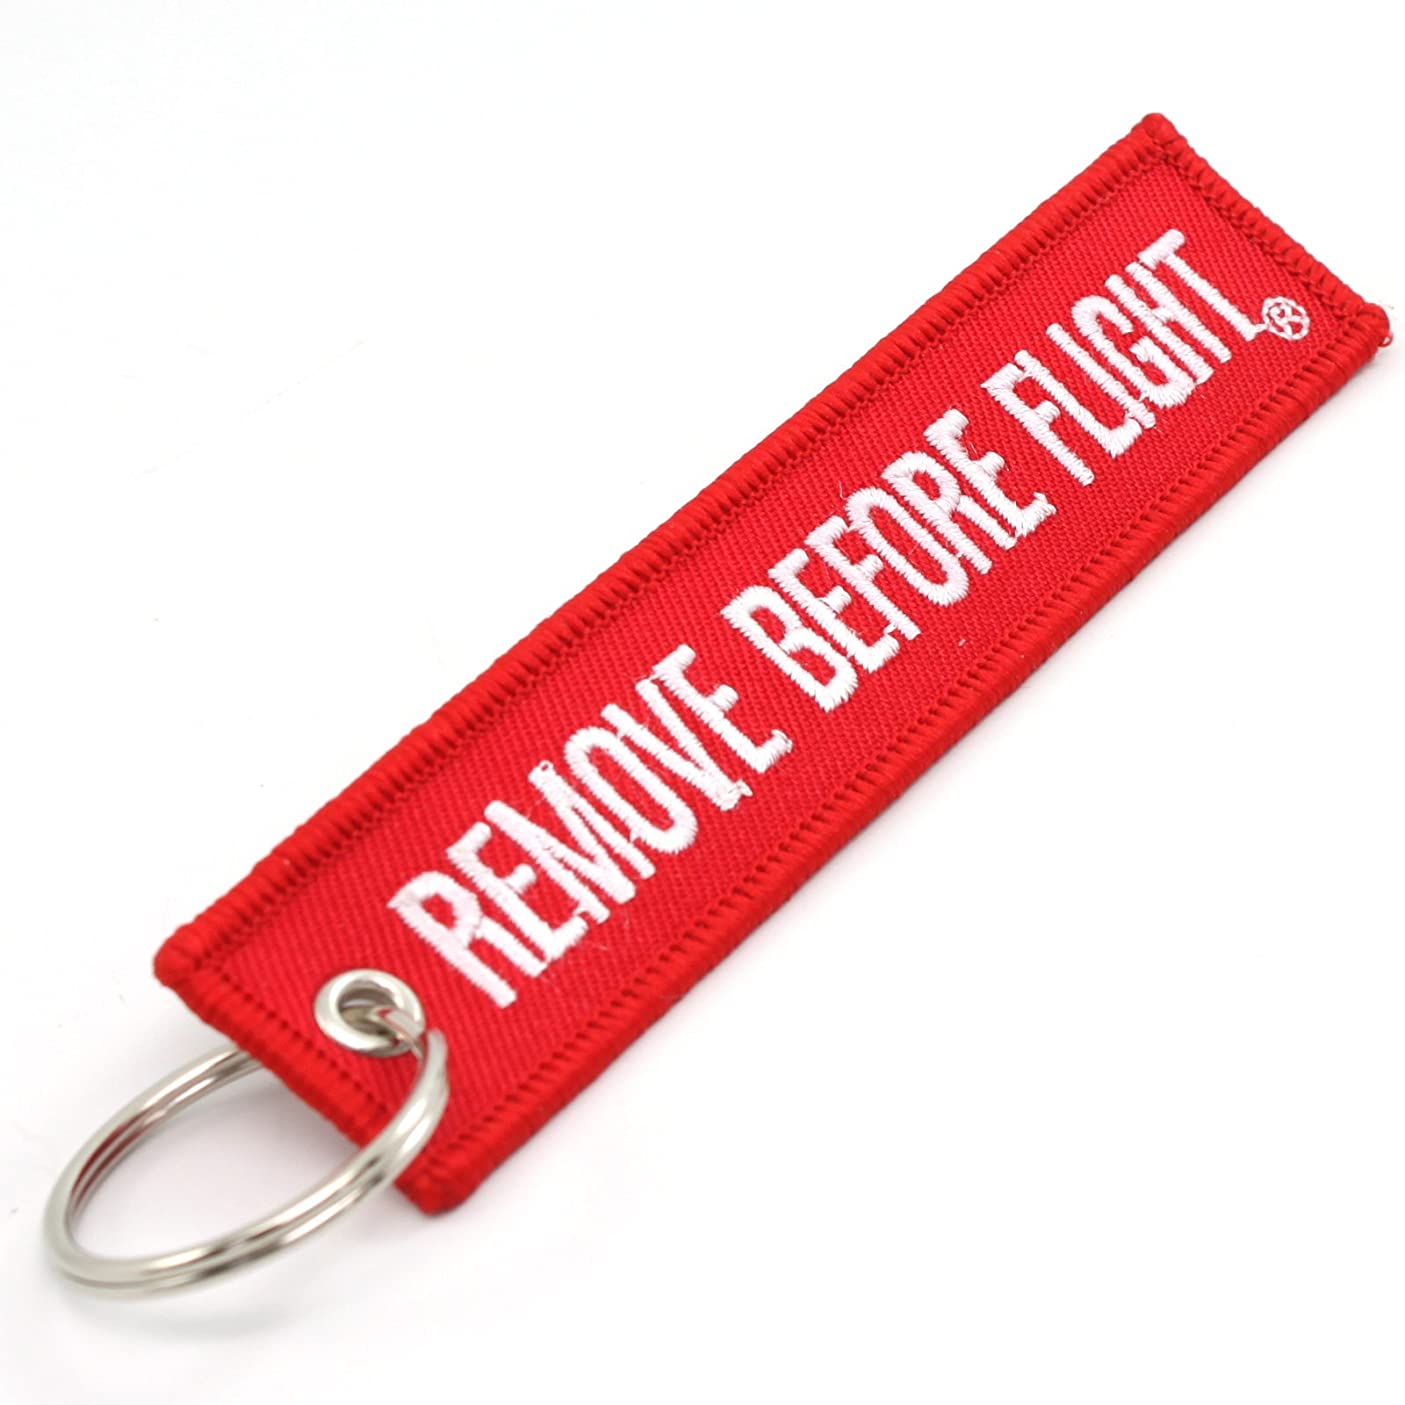 Rotary13B1 Remove Before Flight Key Chain - Red/White 1pc upvsoilwnpl320